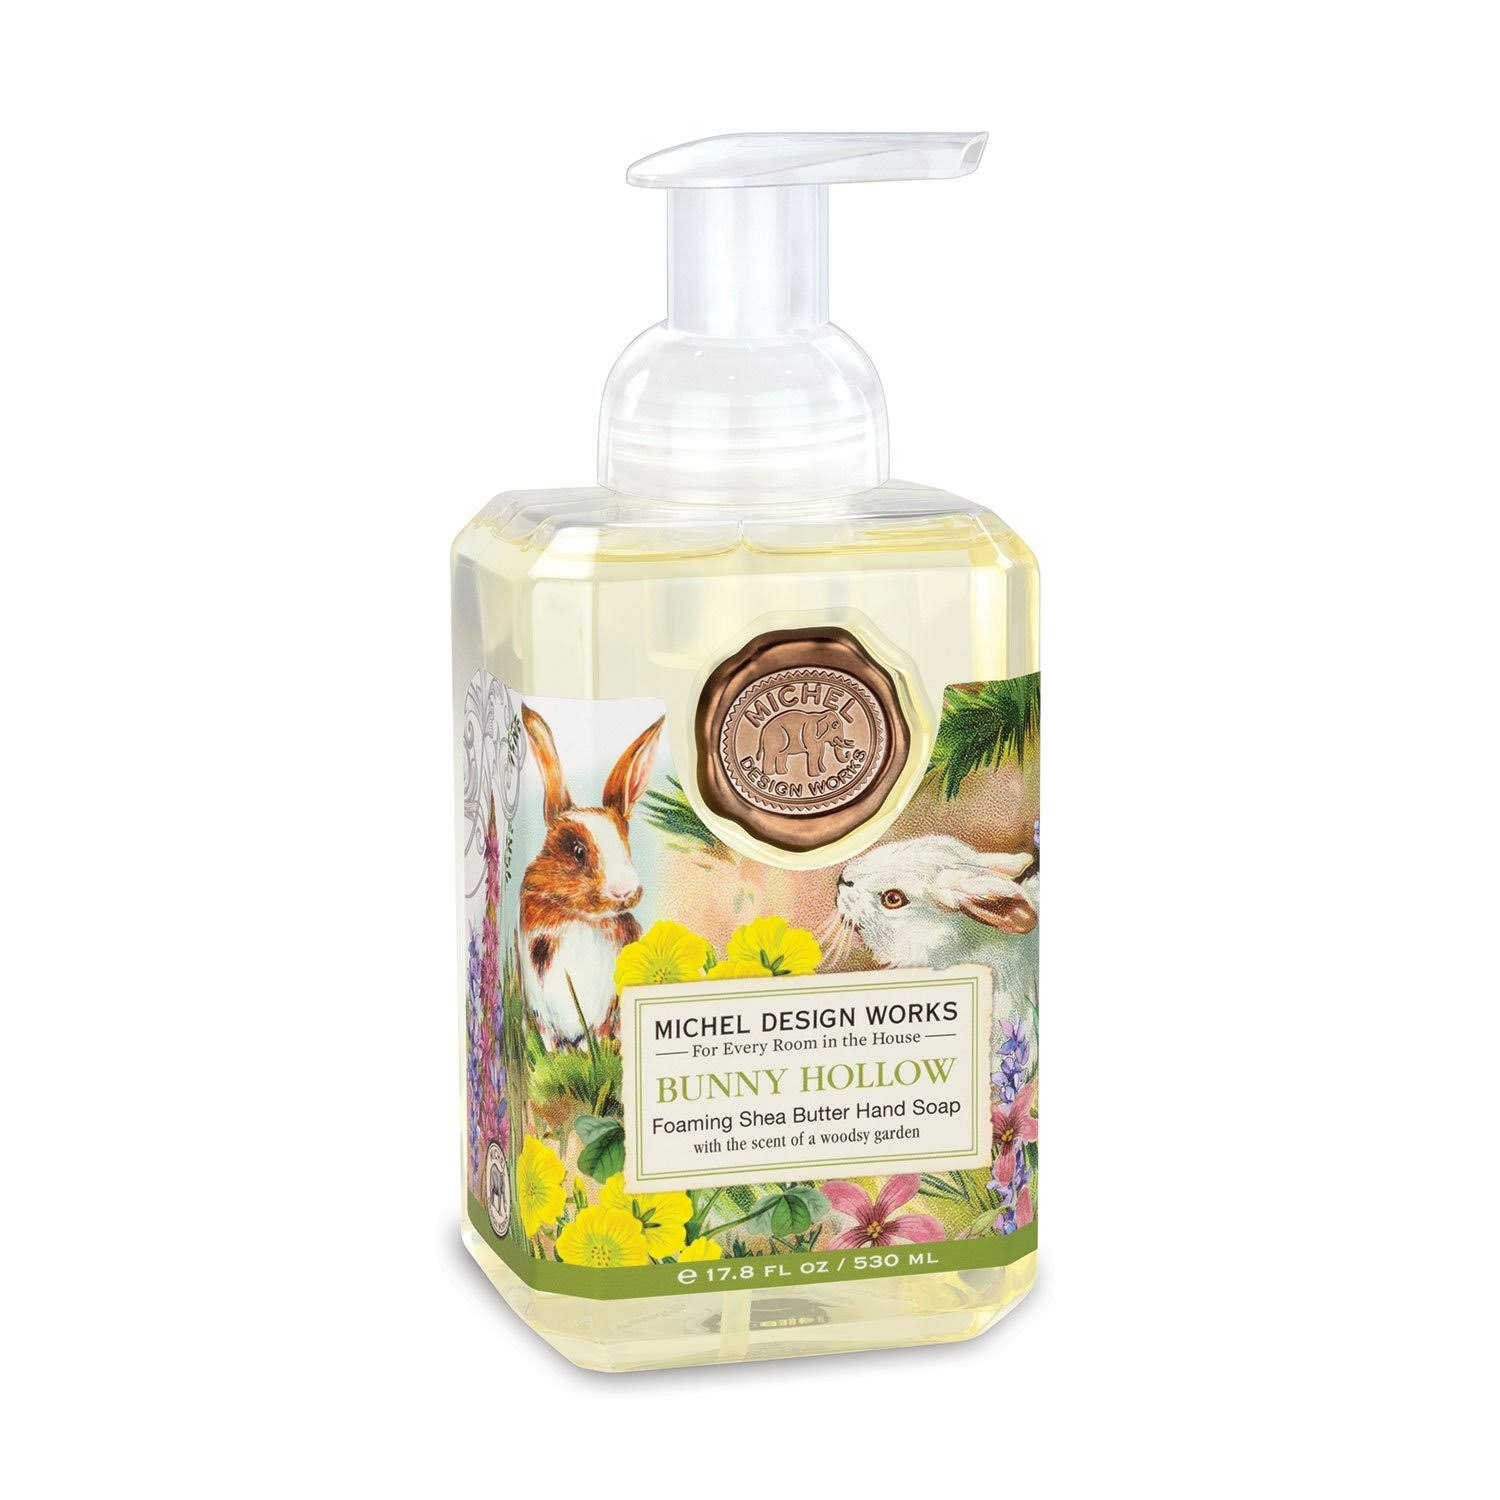 Michel Design Works Bunny Hollow Foaming Hand Soap | zillymonkey